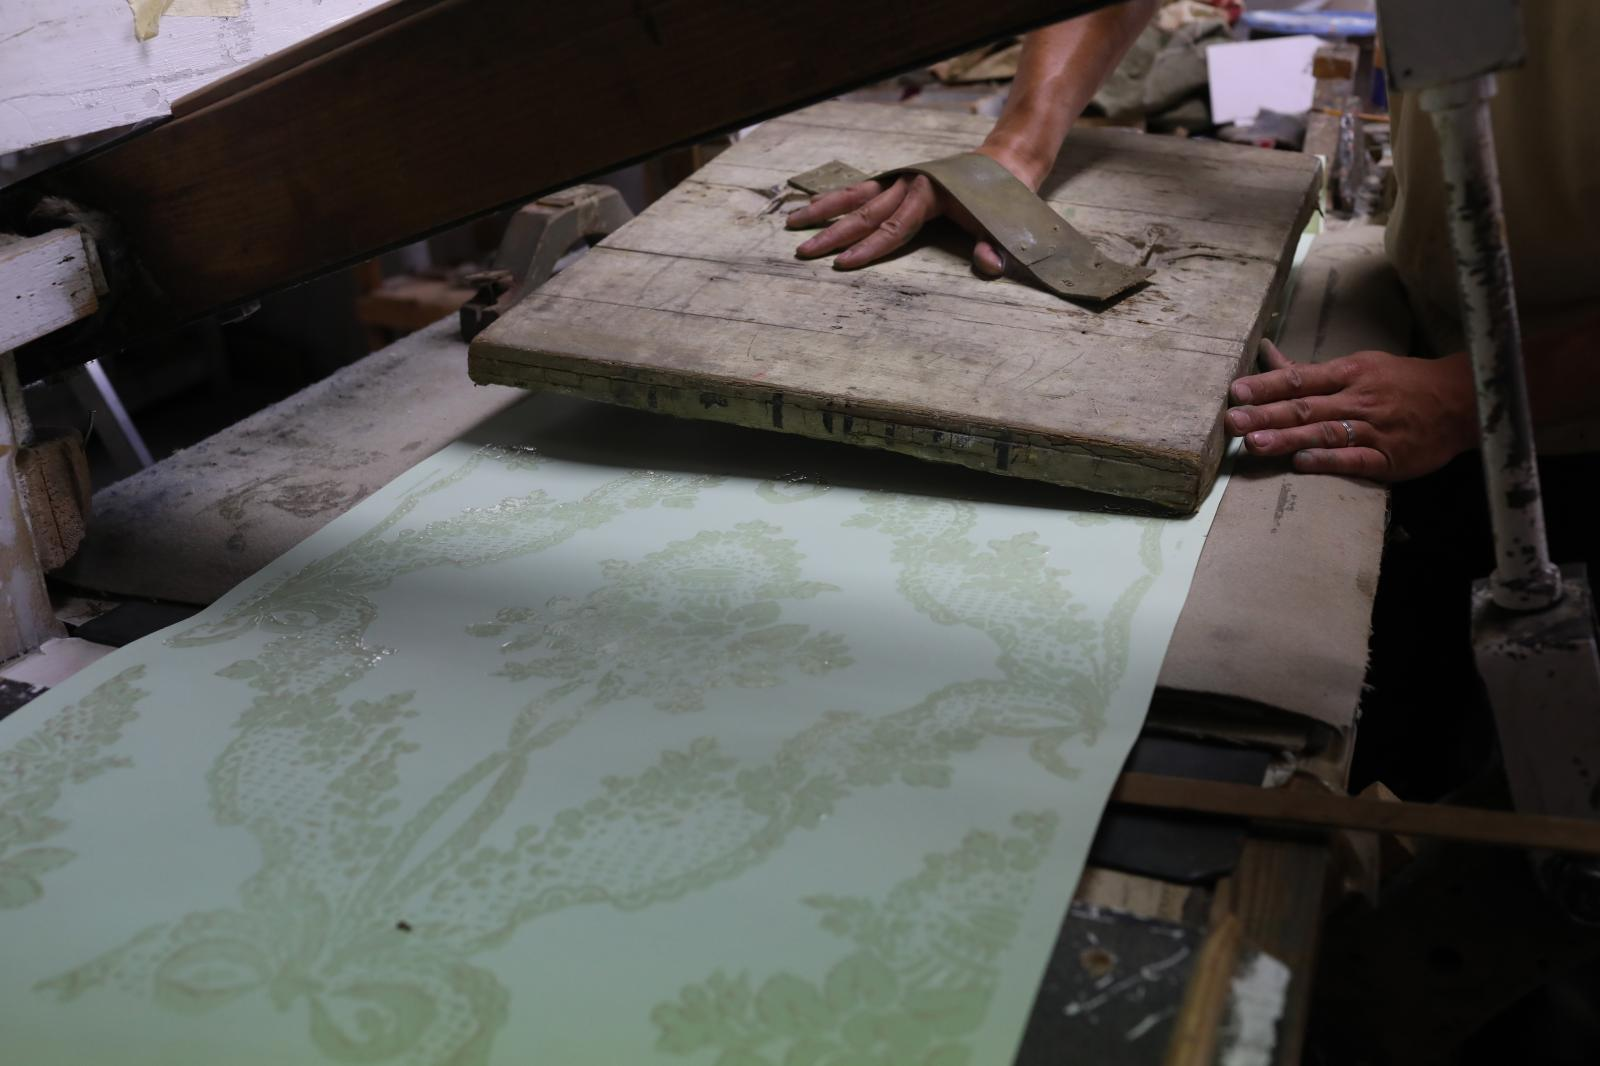 While the factory is famous for its panoramic wallpapers, it has designed 130,000 decorative patterns that can be produced in colour or mo